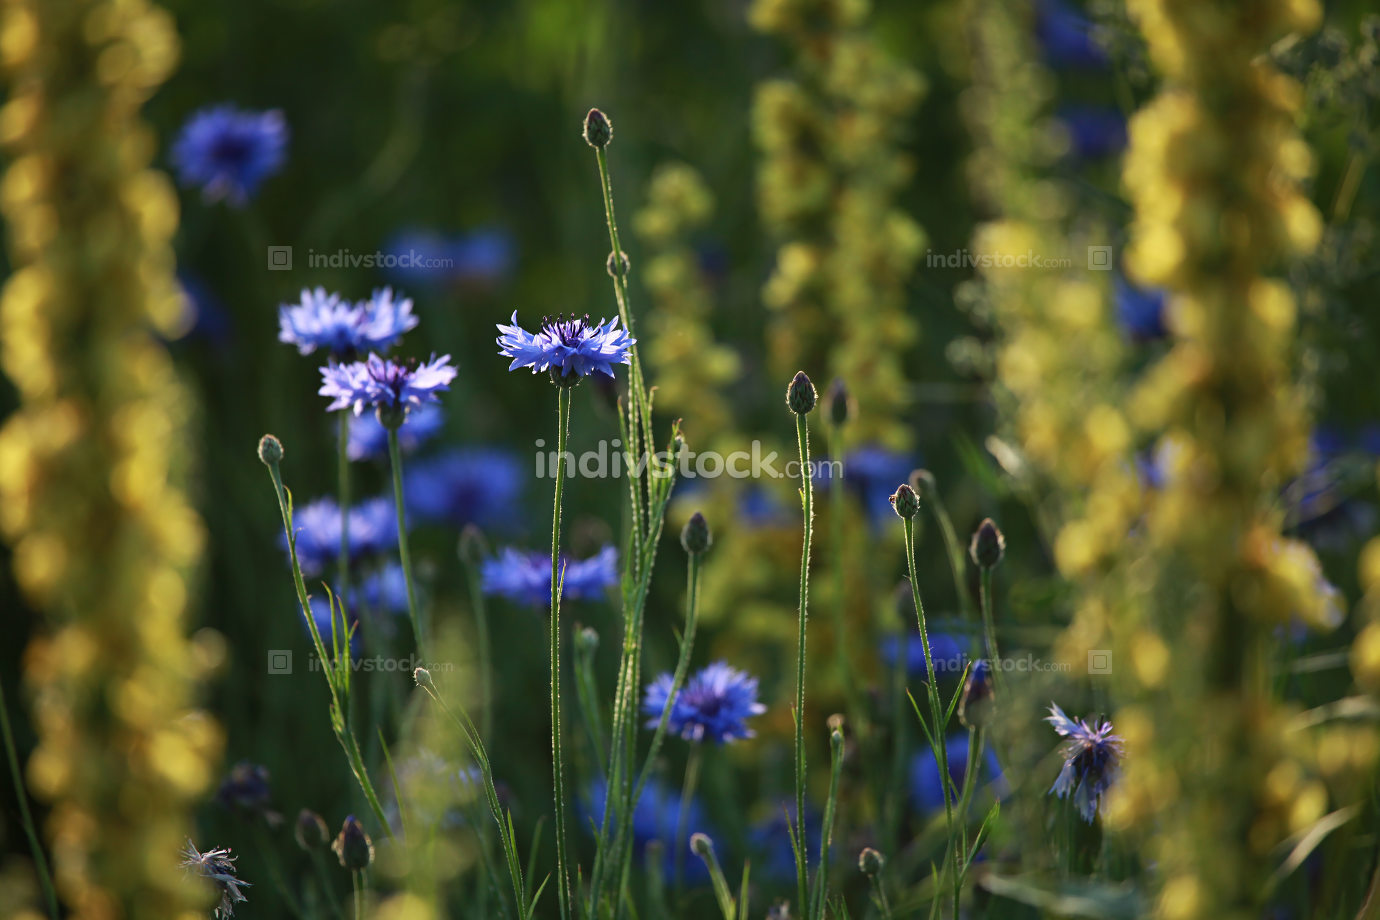 Cornflowers on meadow as background.